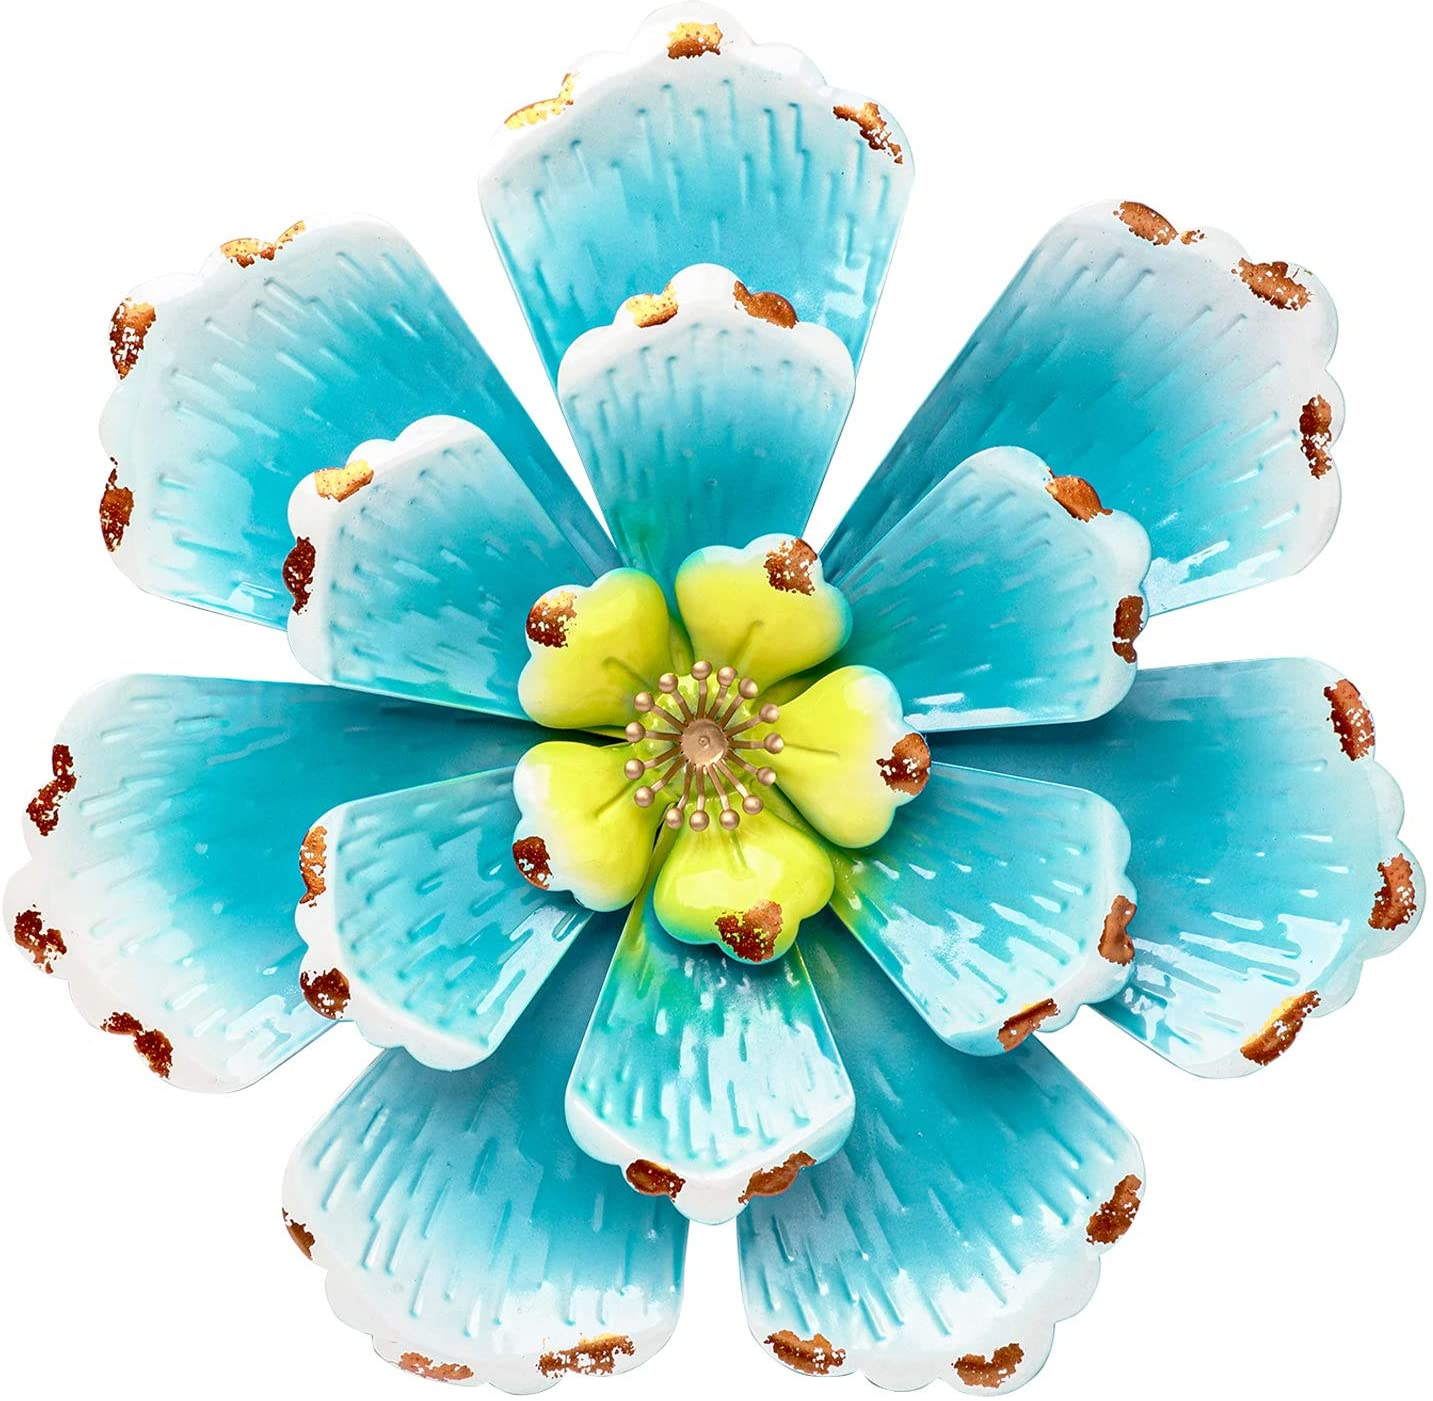 SONGXIN Sky Blue Fall Autumn Metal Flower Home Accents Decor Wall Art Decorations Indoor or Outdoor Wall Sculptures Hanging for Bathroom Living Room Bedroom 12.2 Inch